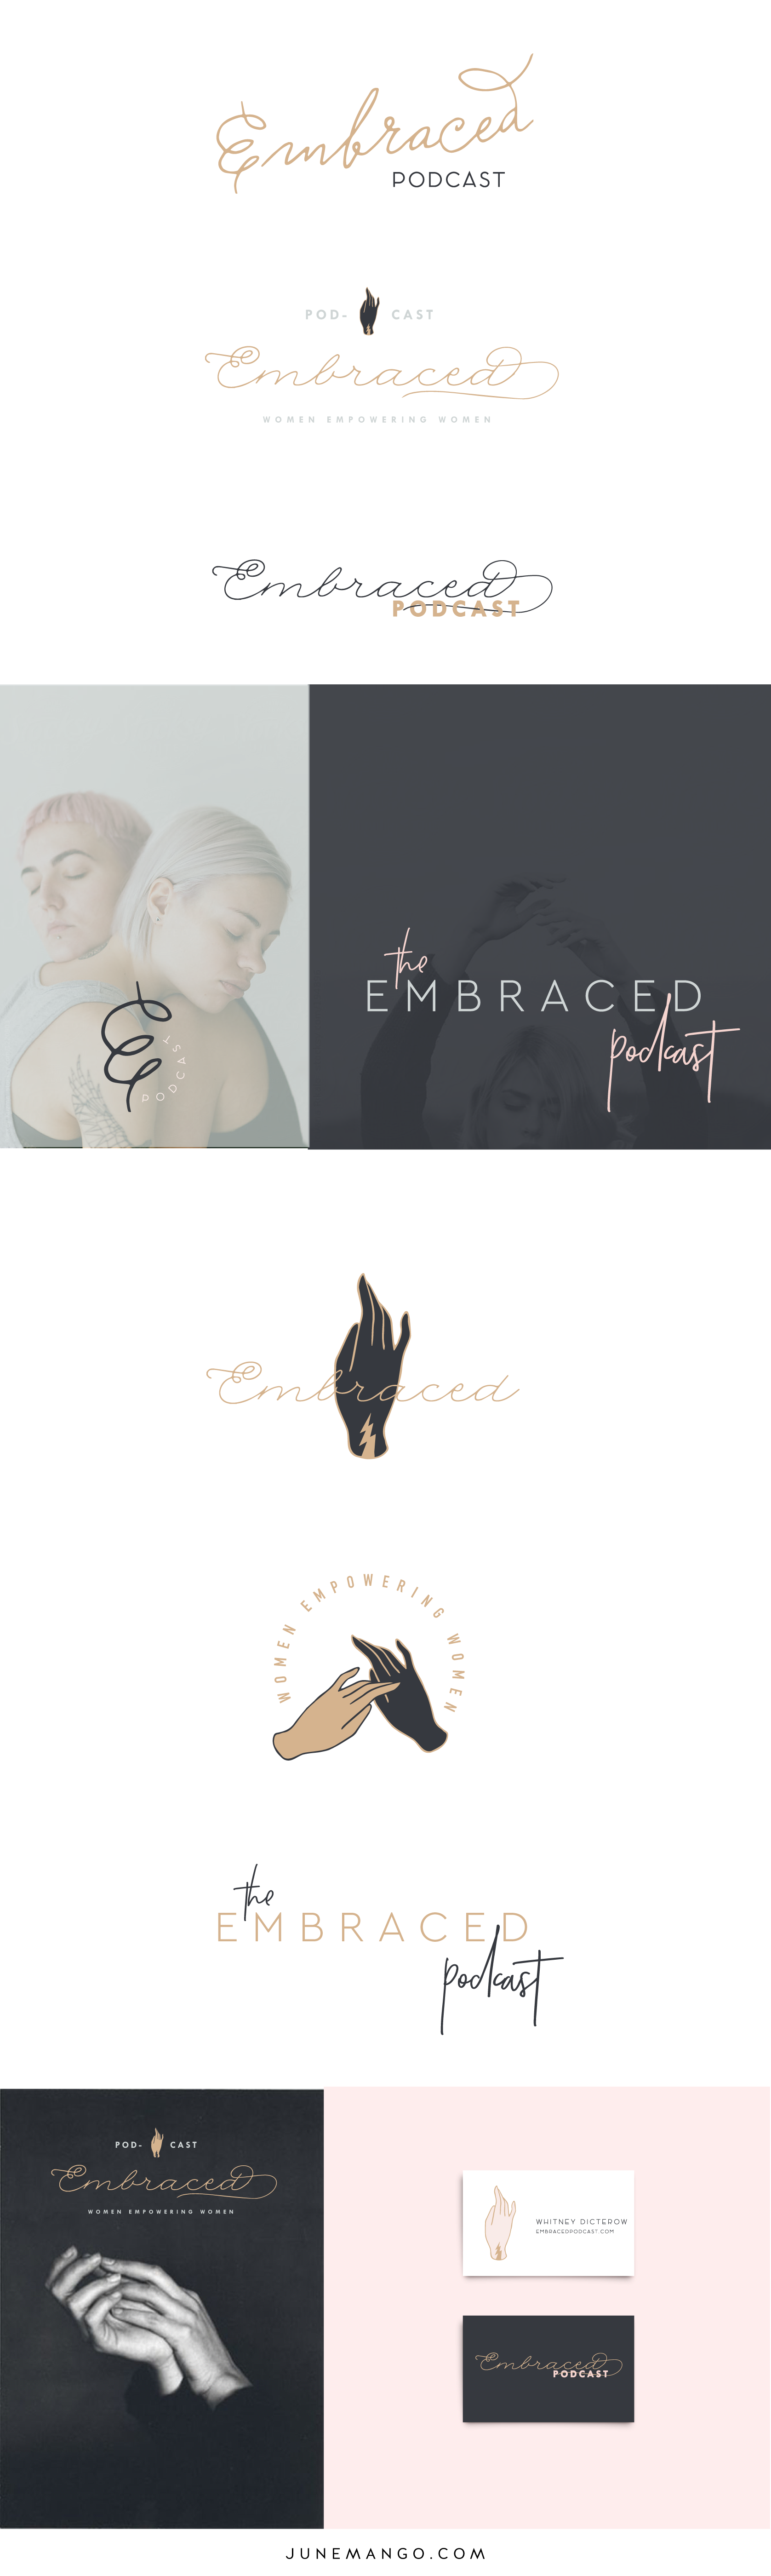 Embraced-women-empower-Podcast-Logo-Process.png